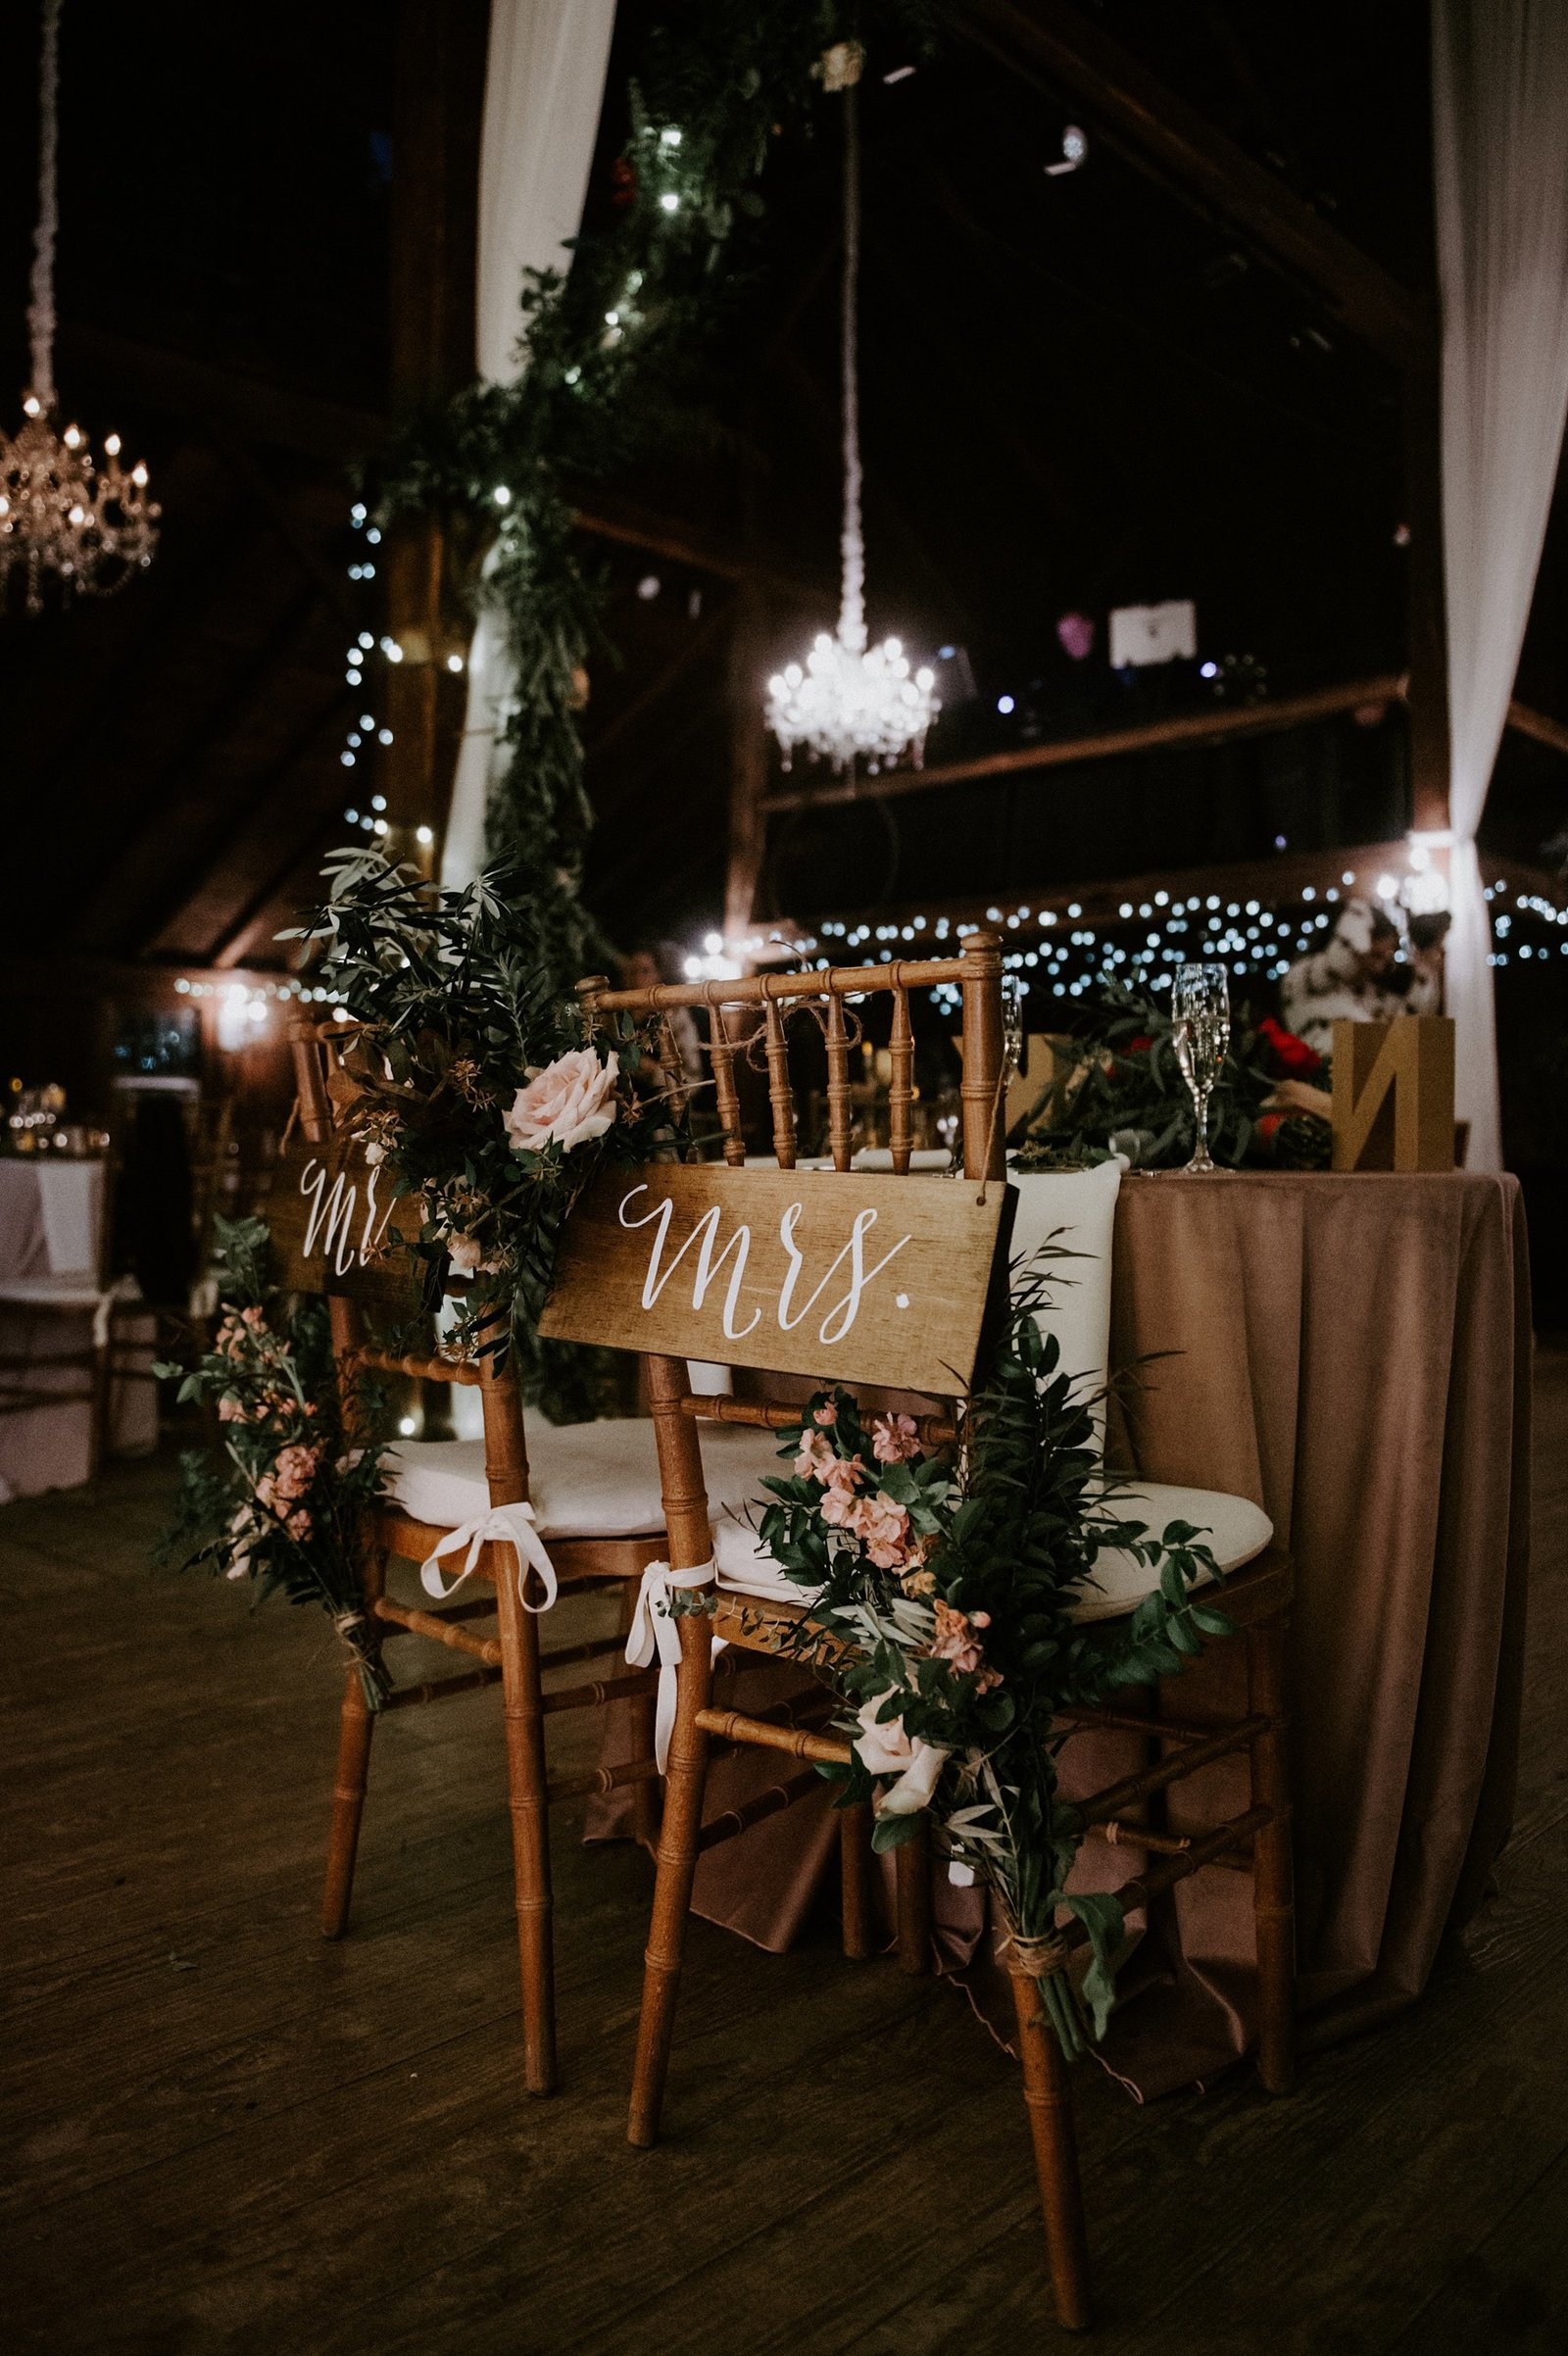 Rustic & romantic wedding at The Webb Barn with draping and chandeliers in Wethersfield, CT